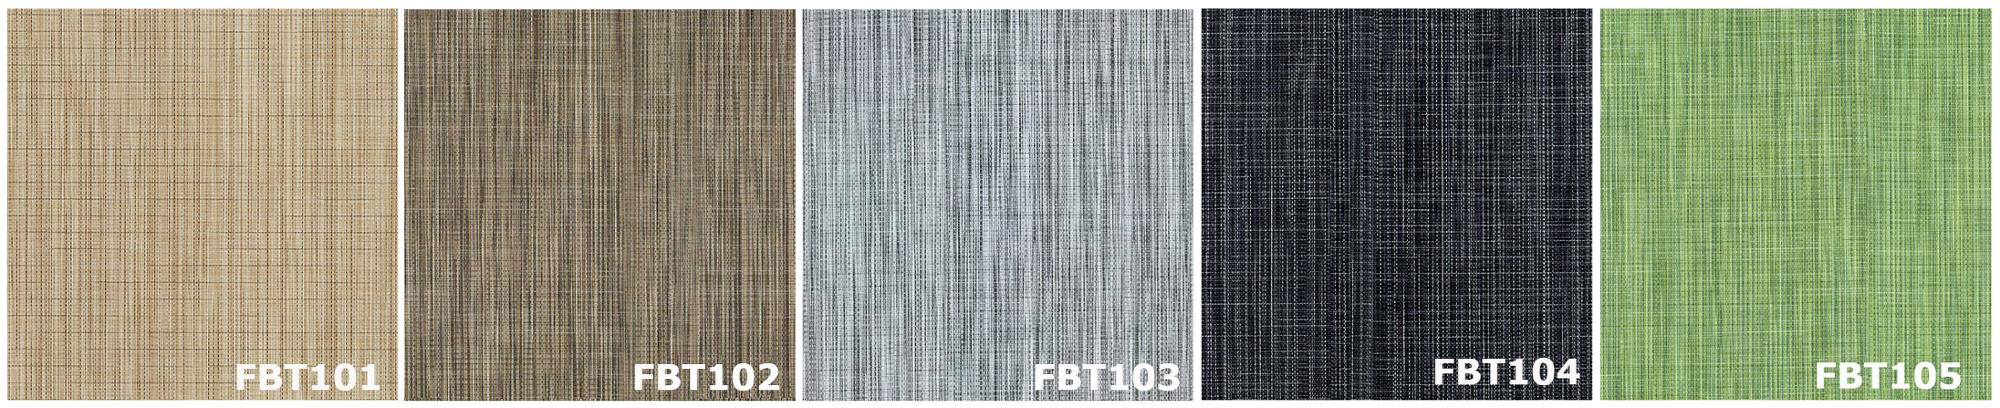 FBT-100 Series, FABTEX TILE, 5 Colors, Sample Availble